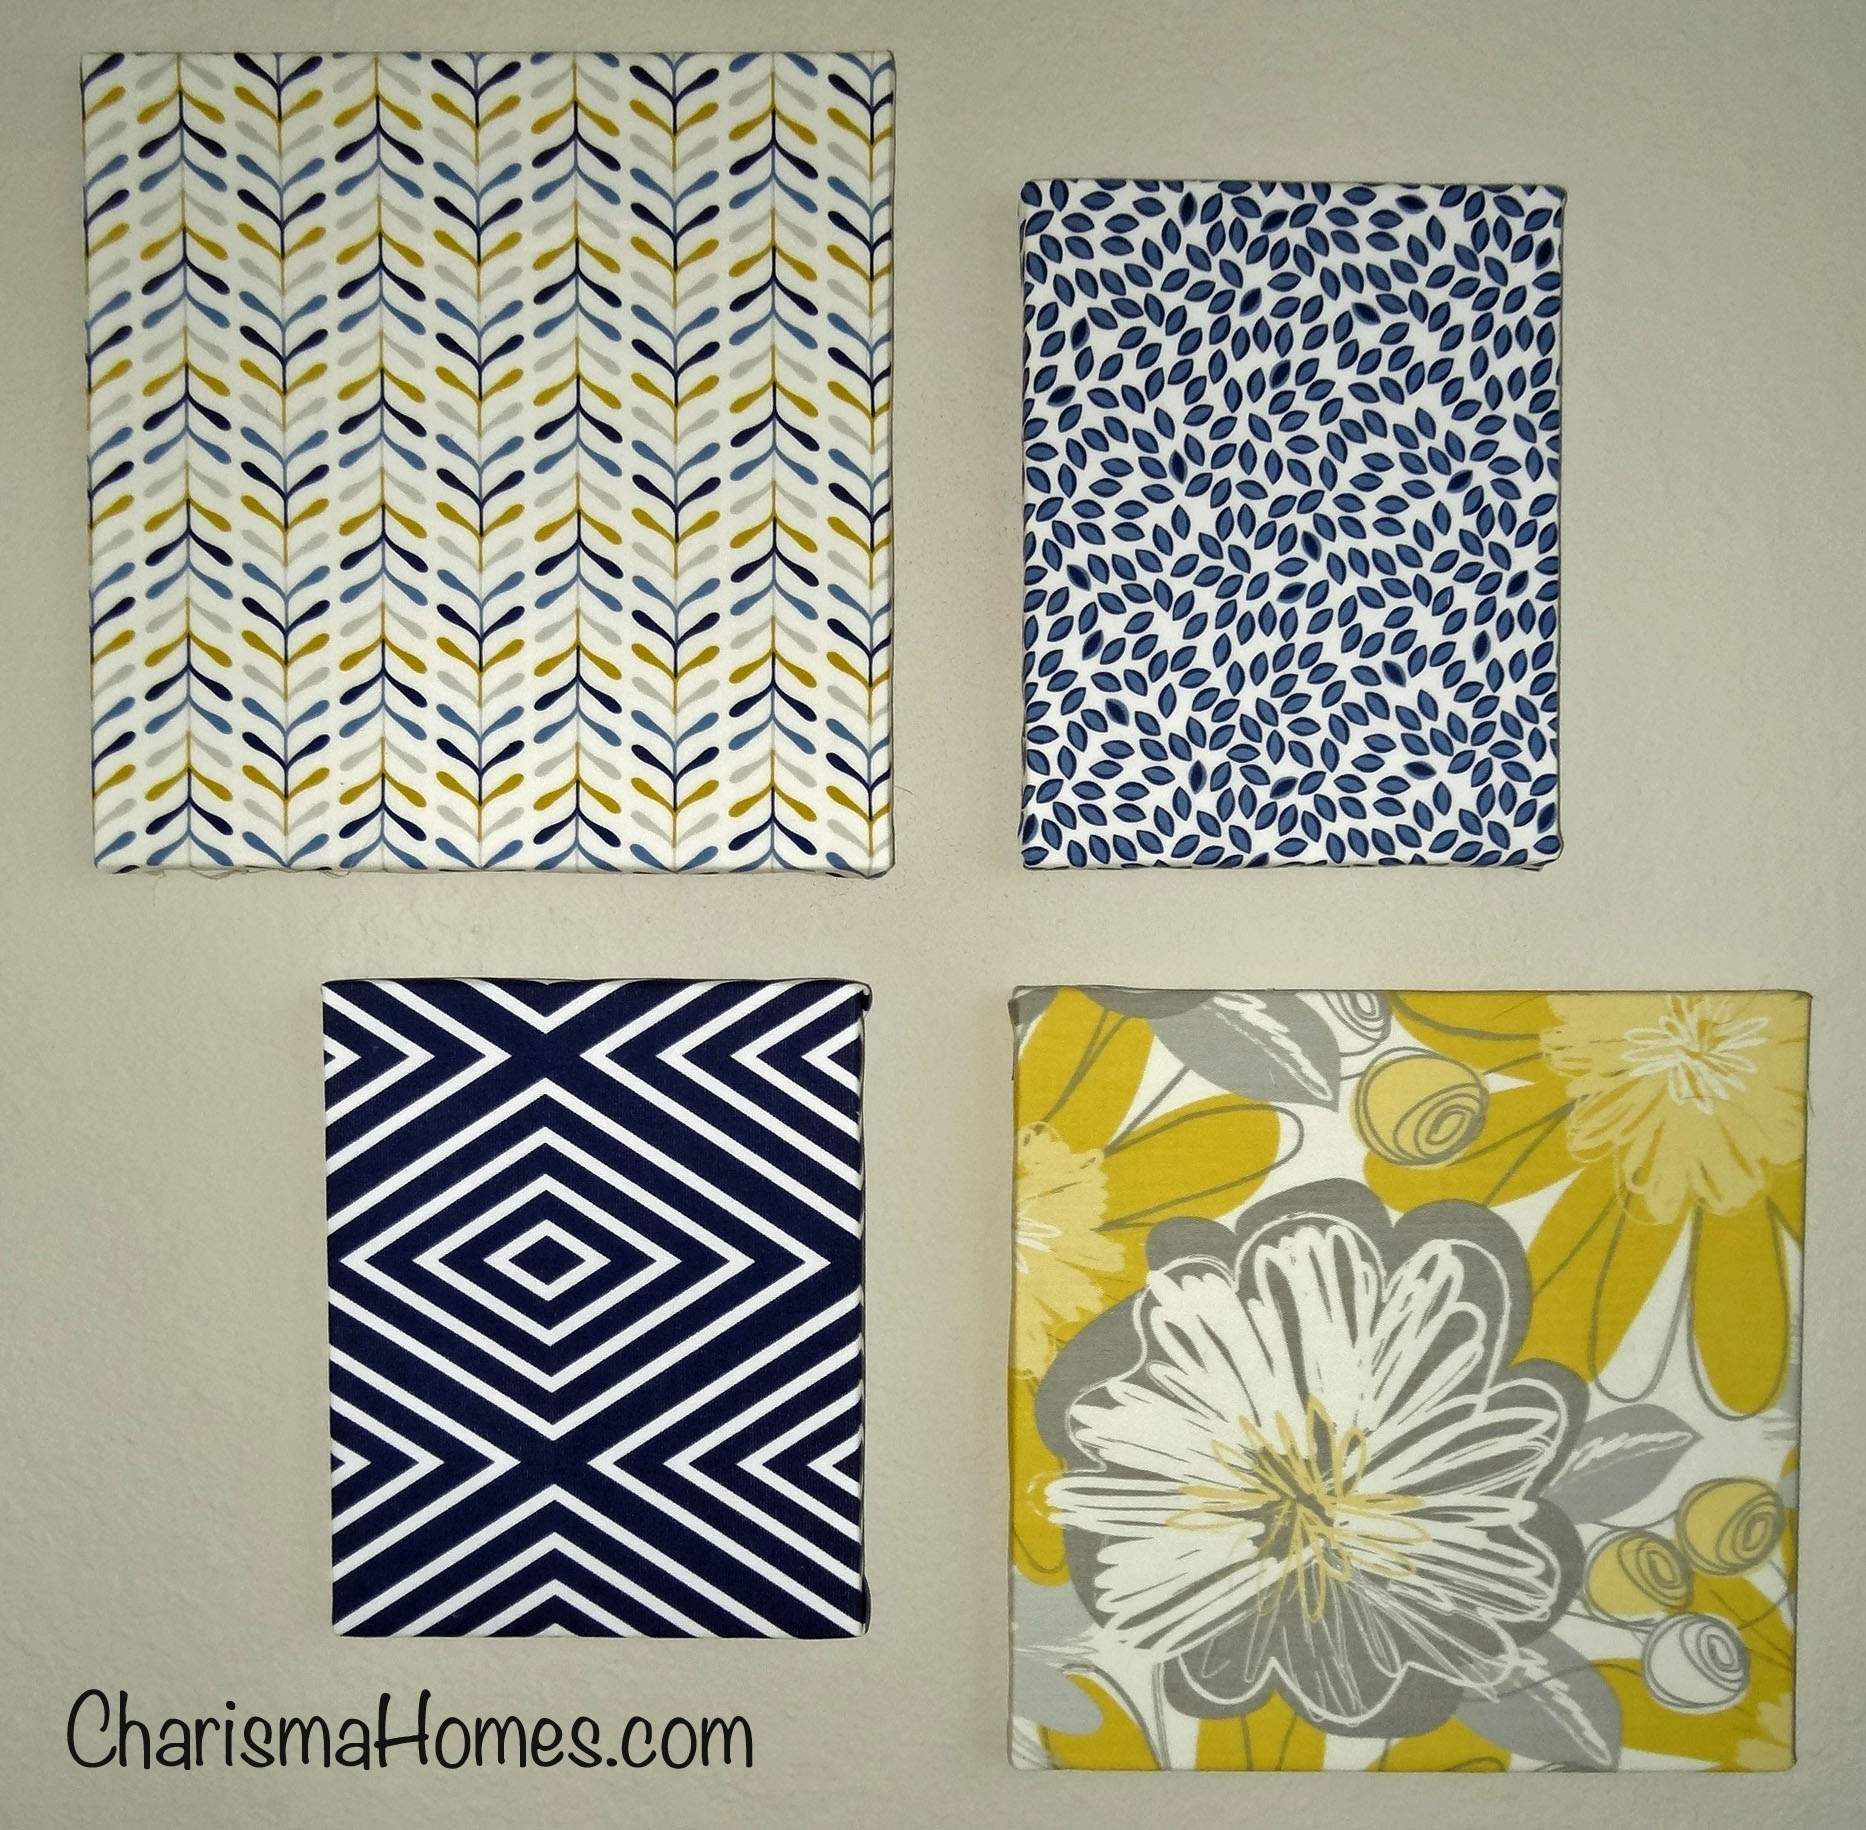 Wall Art Designs: Terrific Fabric Covered Canvas Wall Art Simple For Most Up To Date Simple Fabric Wall Art (View 12 of 15)